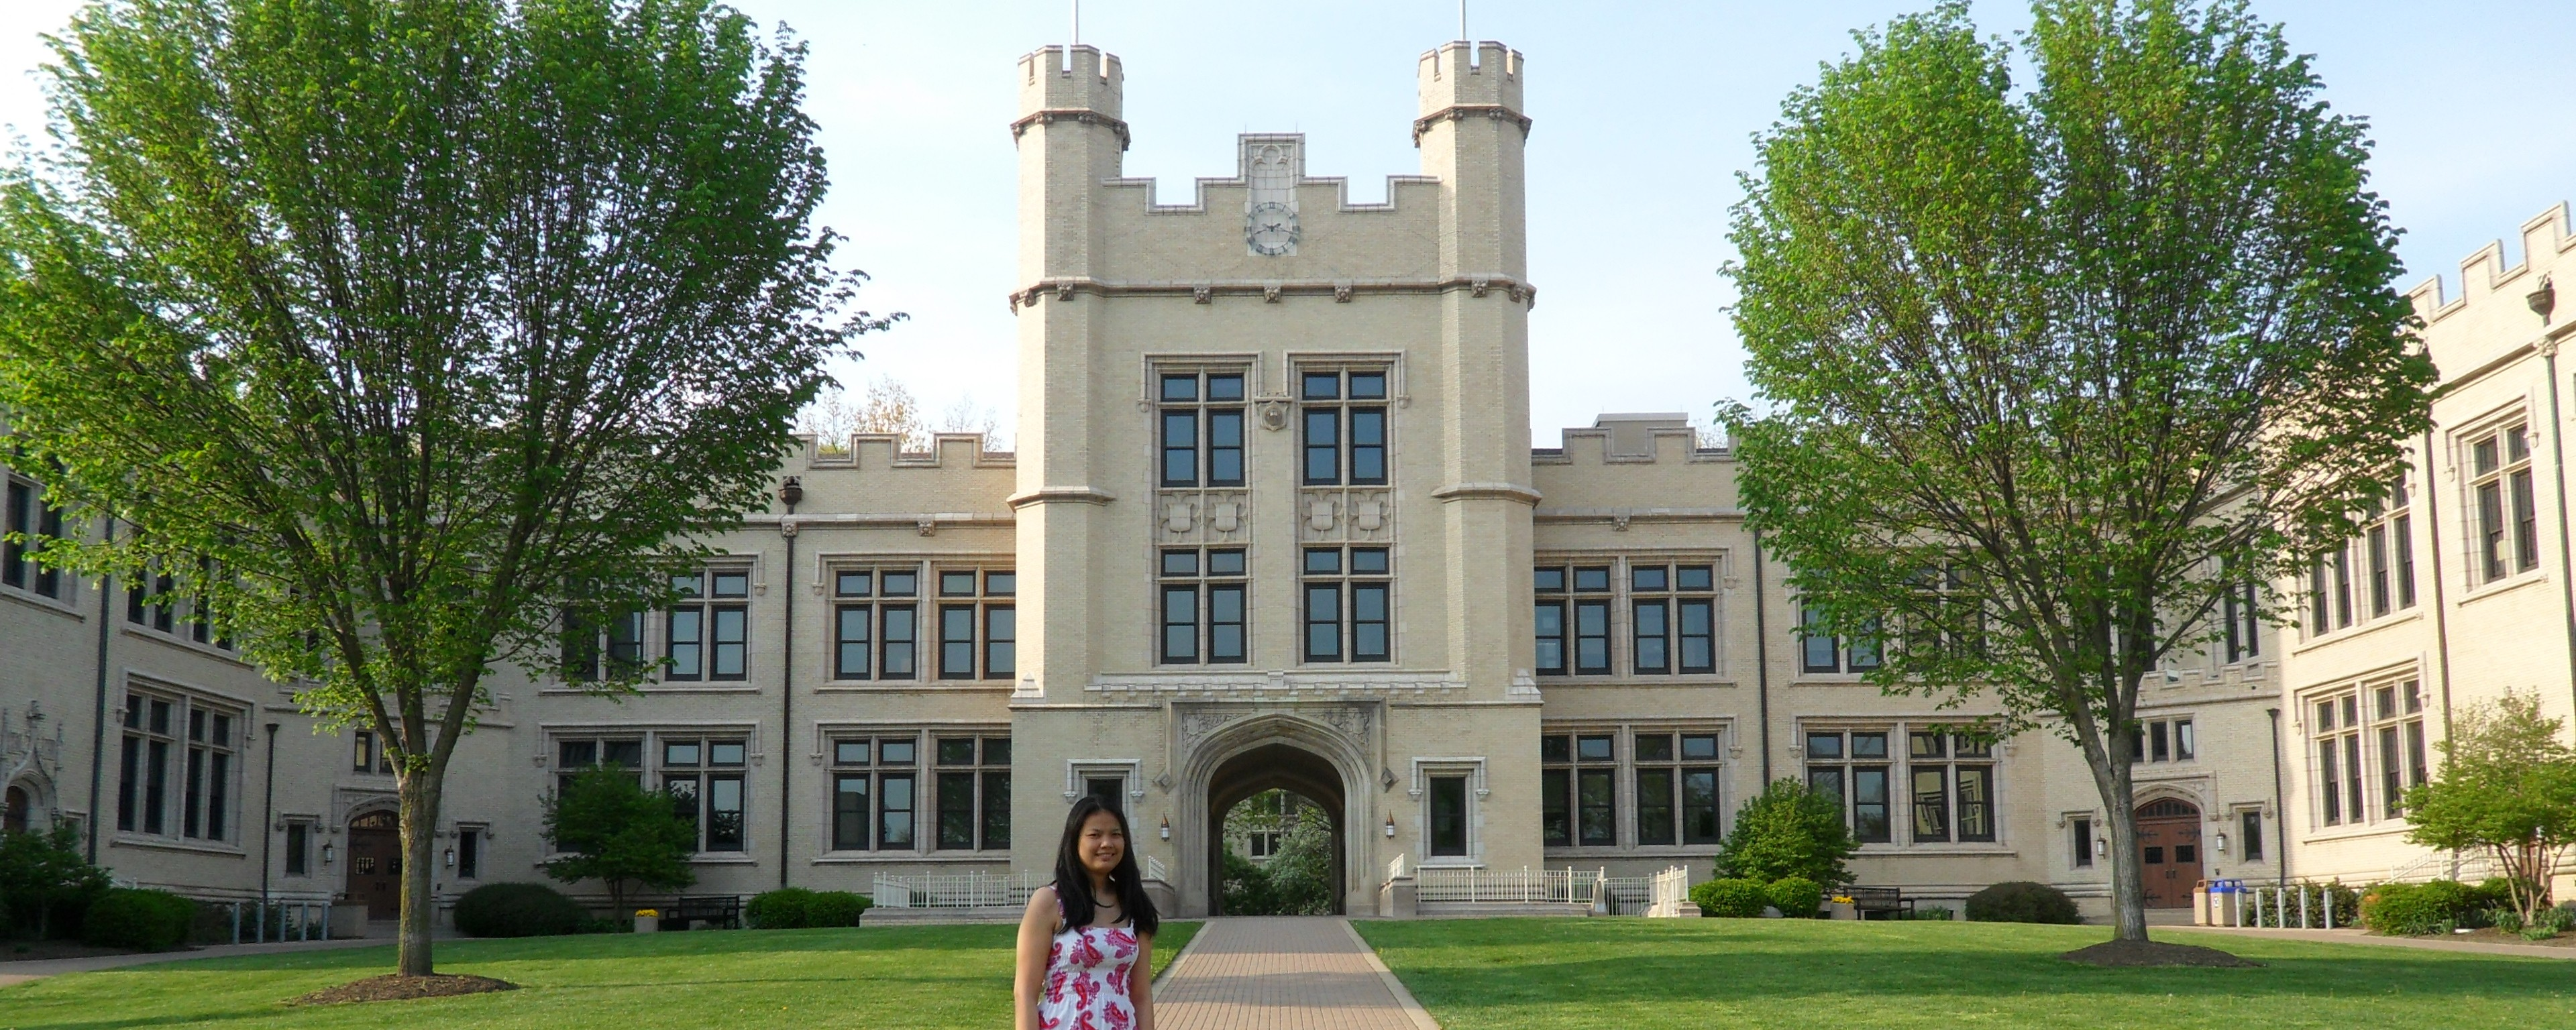 Kehidupan di The College of Wooster